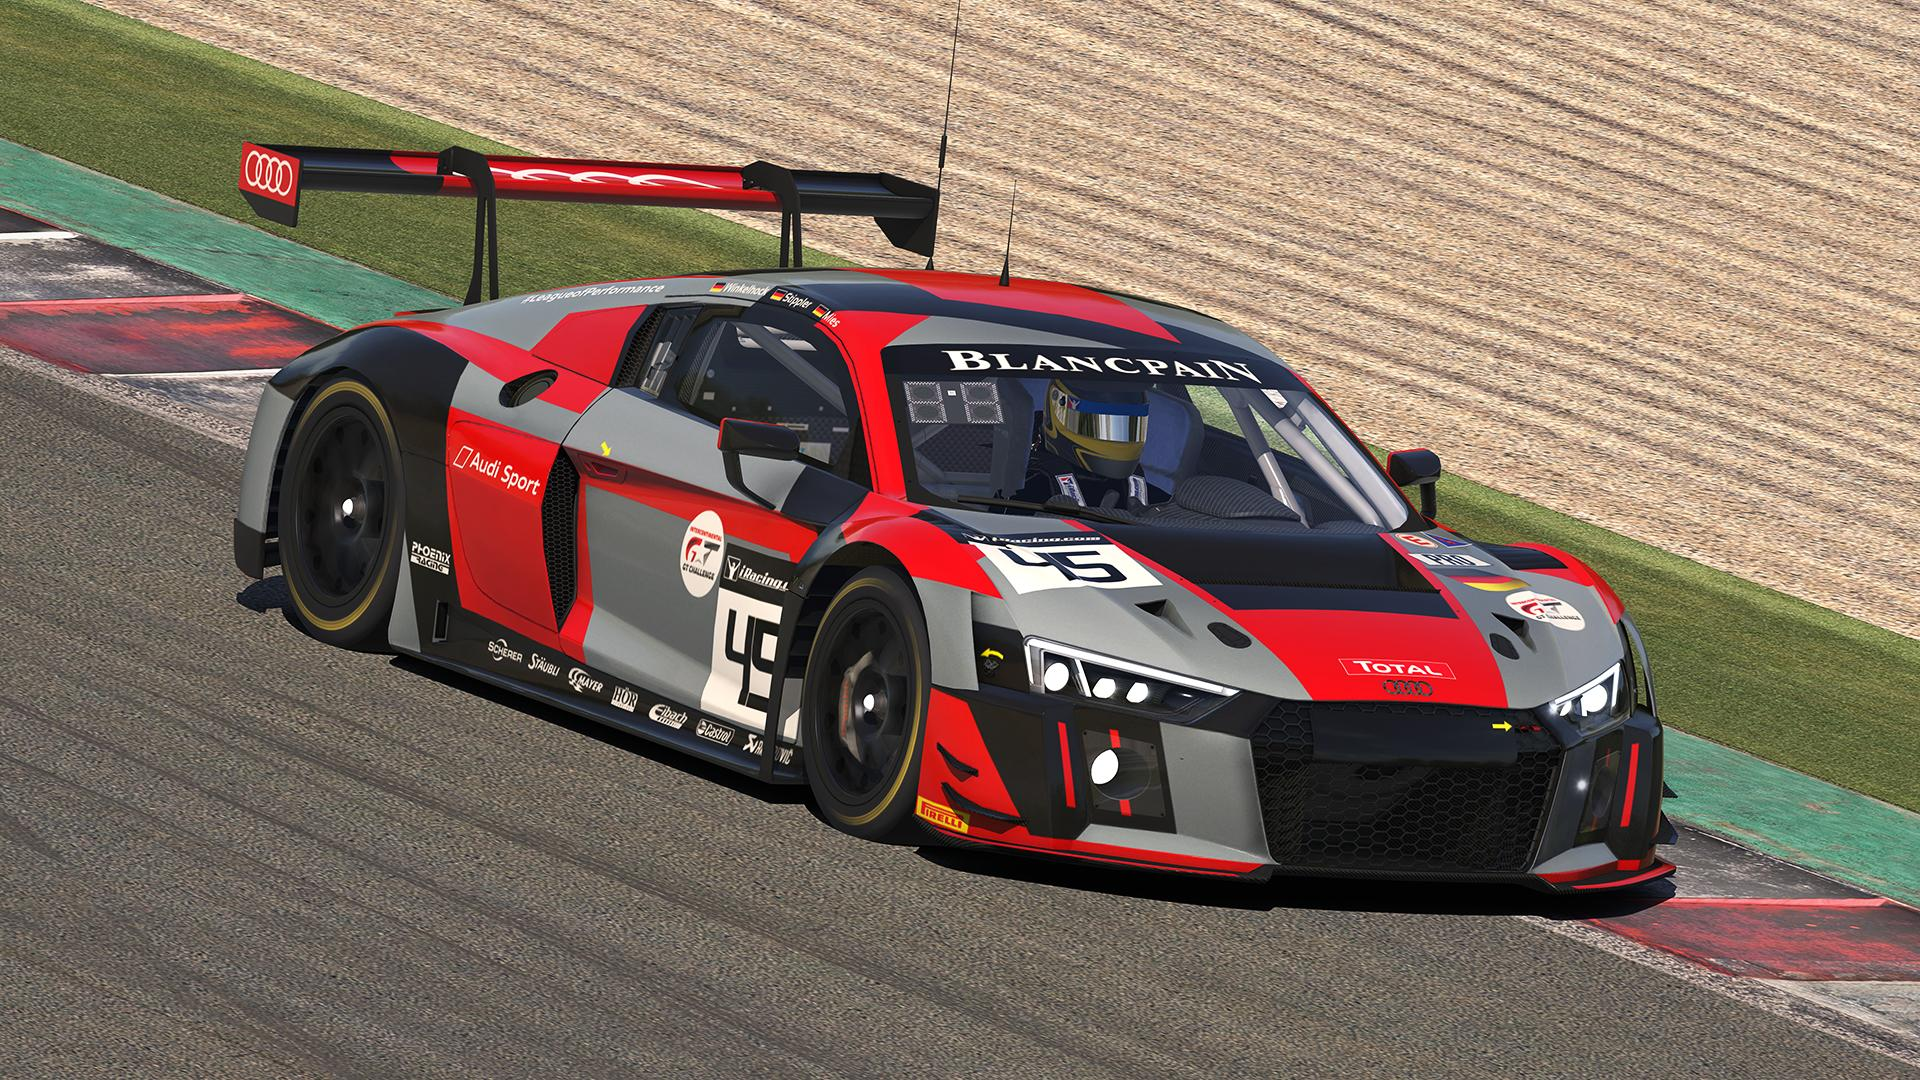 Preview of Phoenix Racing #6 Spa 24h 2016 (Fixed for 19S2 Update) by Jann Dircks